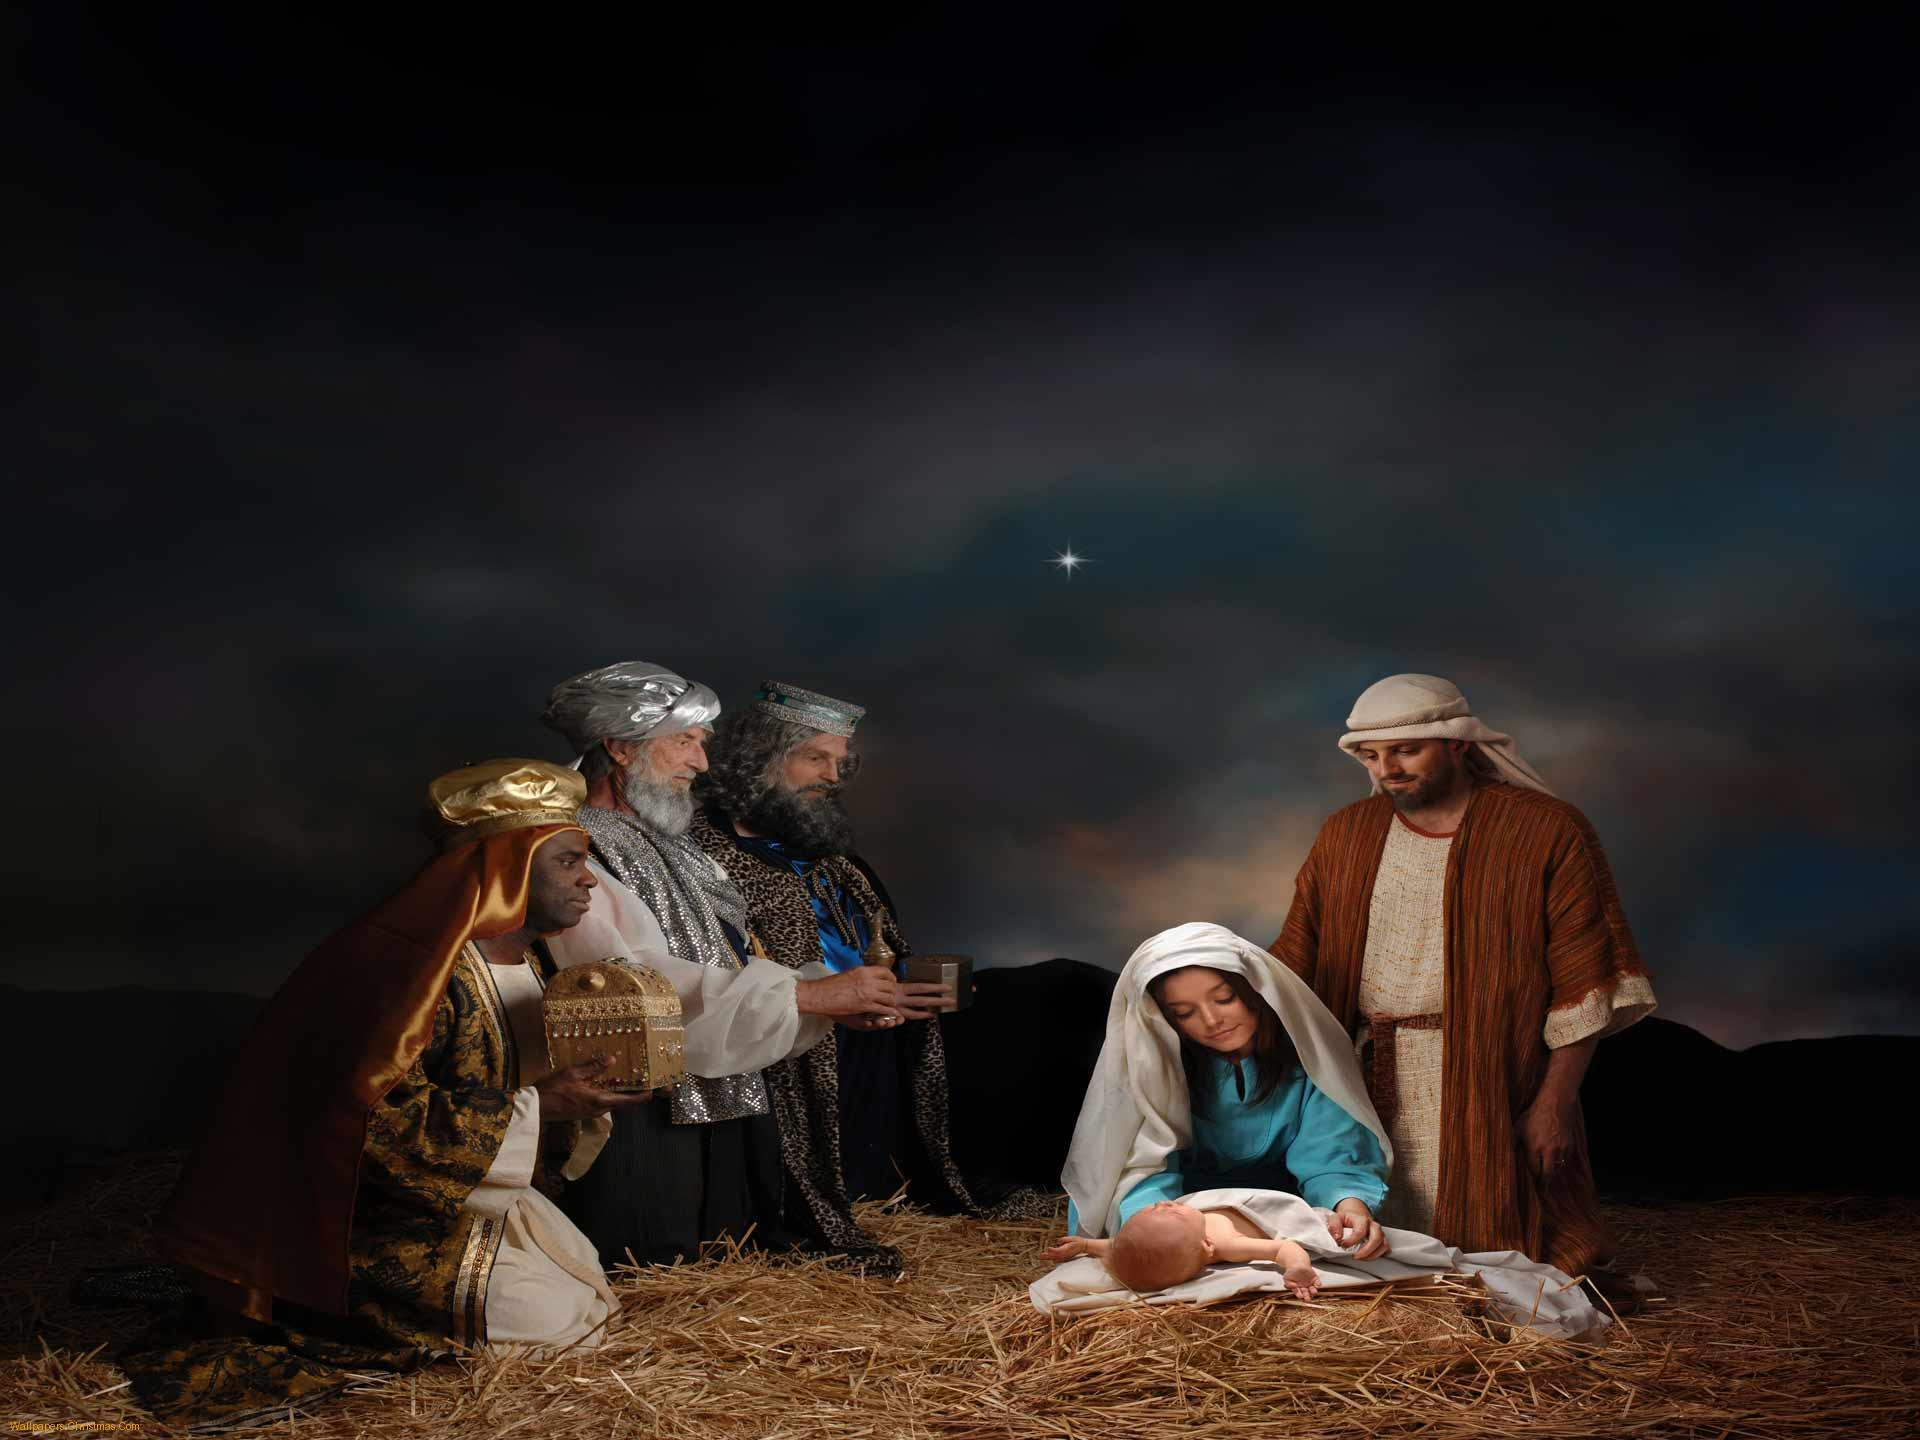 Image For > Nativity Scene Backgrounds